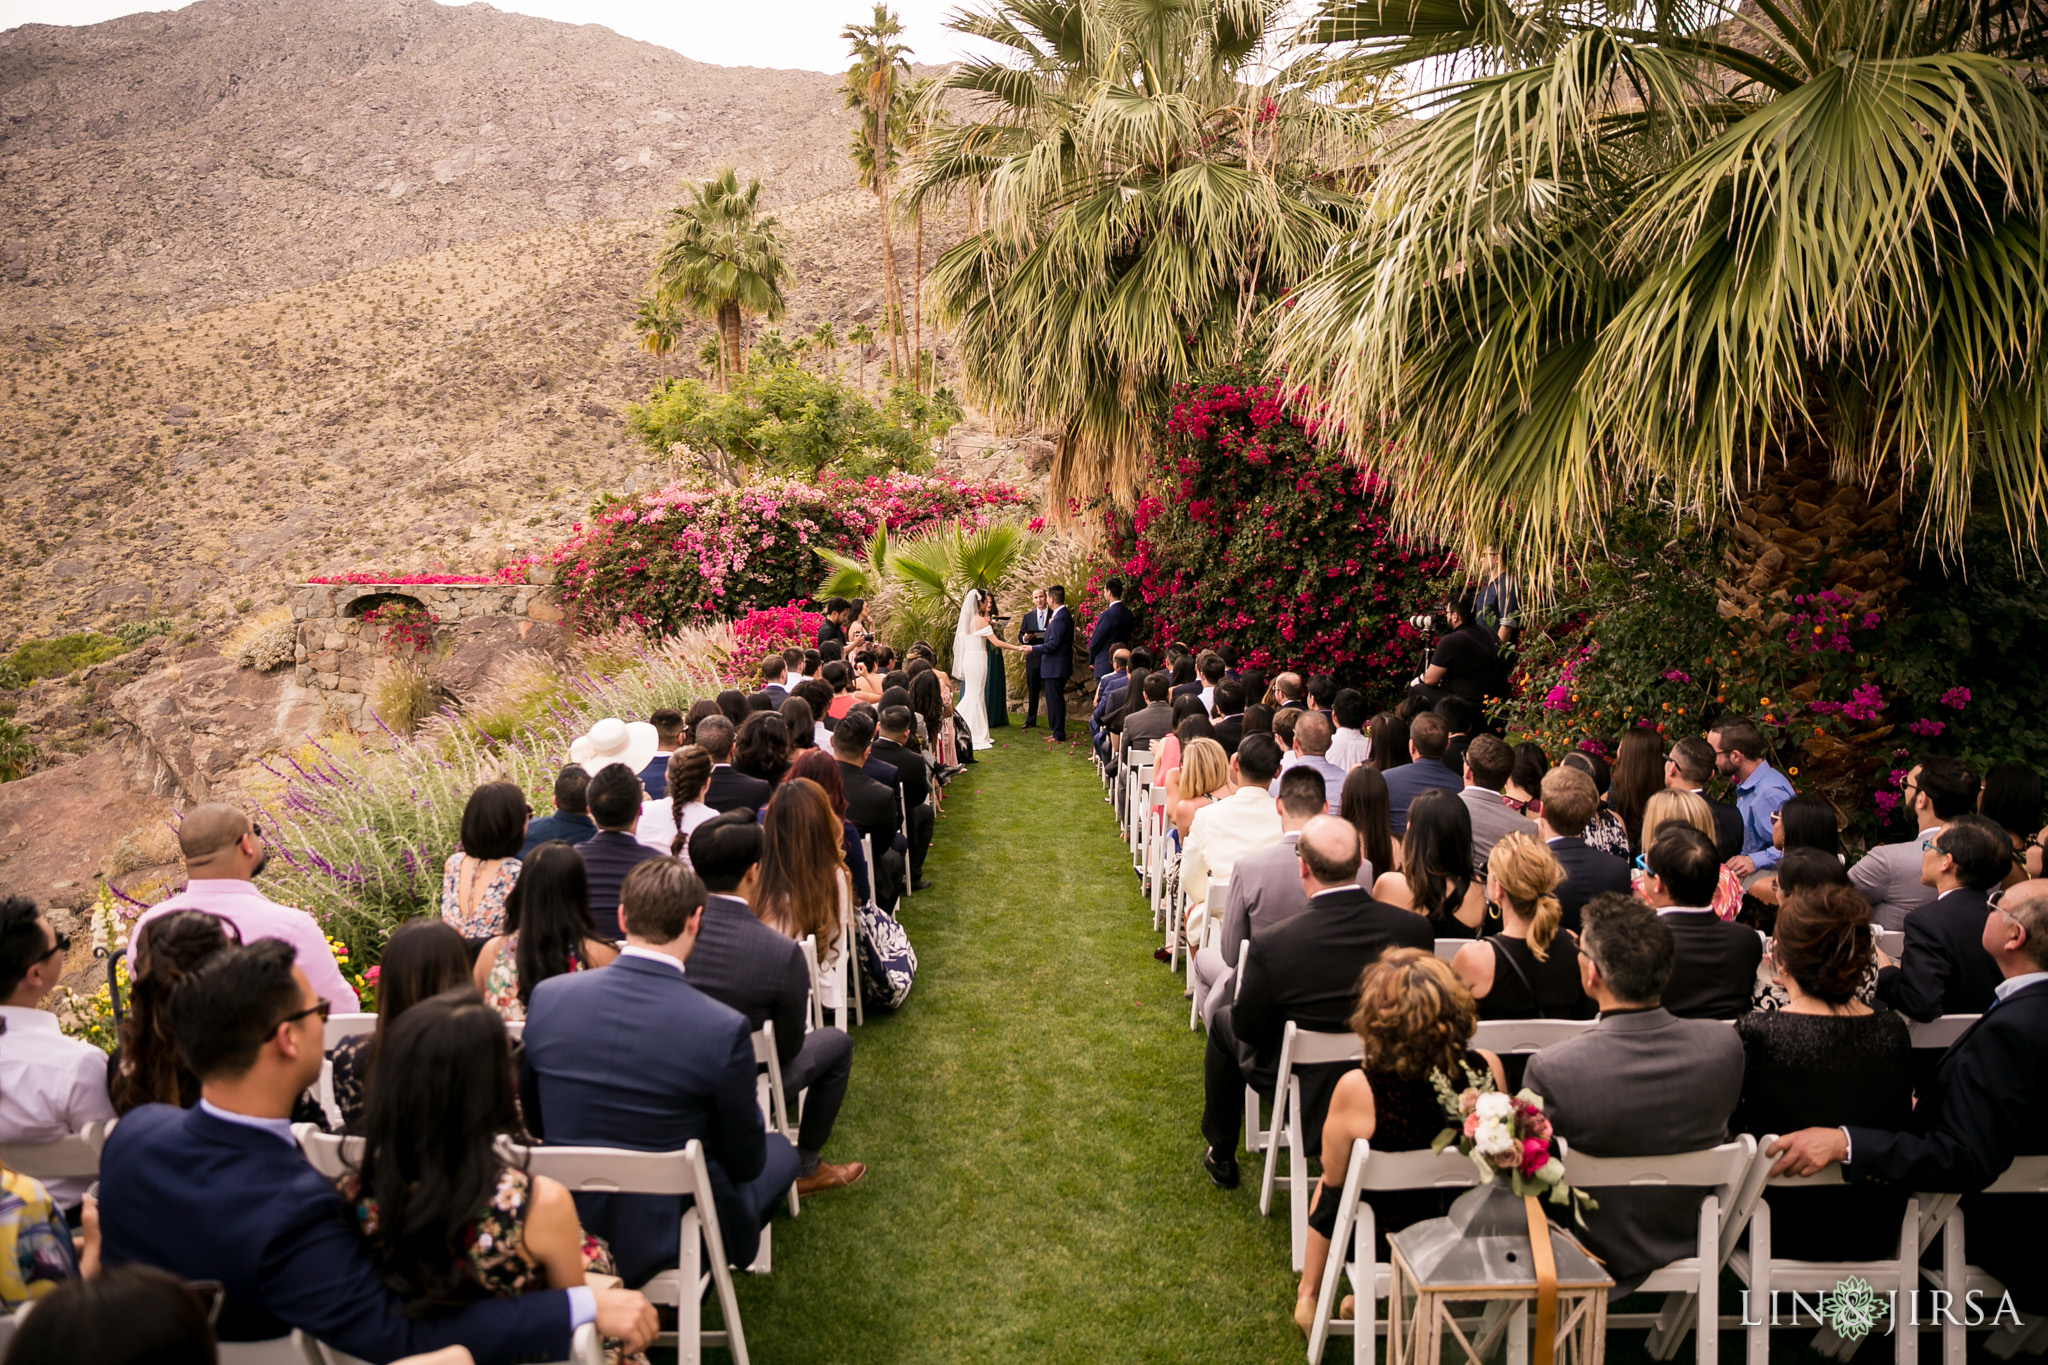 19 odonnell house palm springs wedding ceremony photography